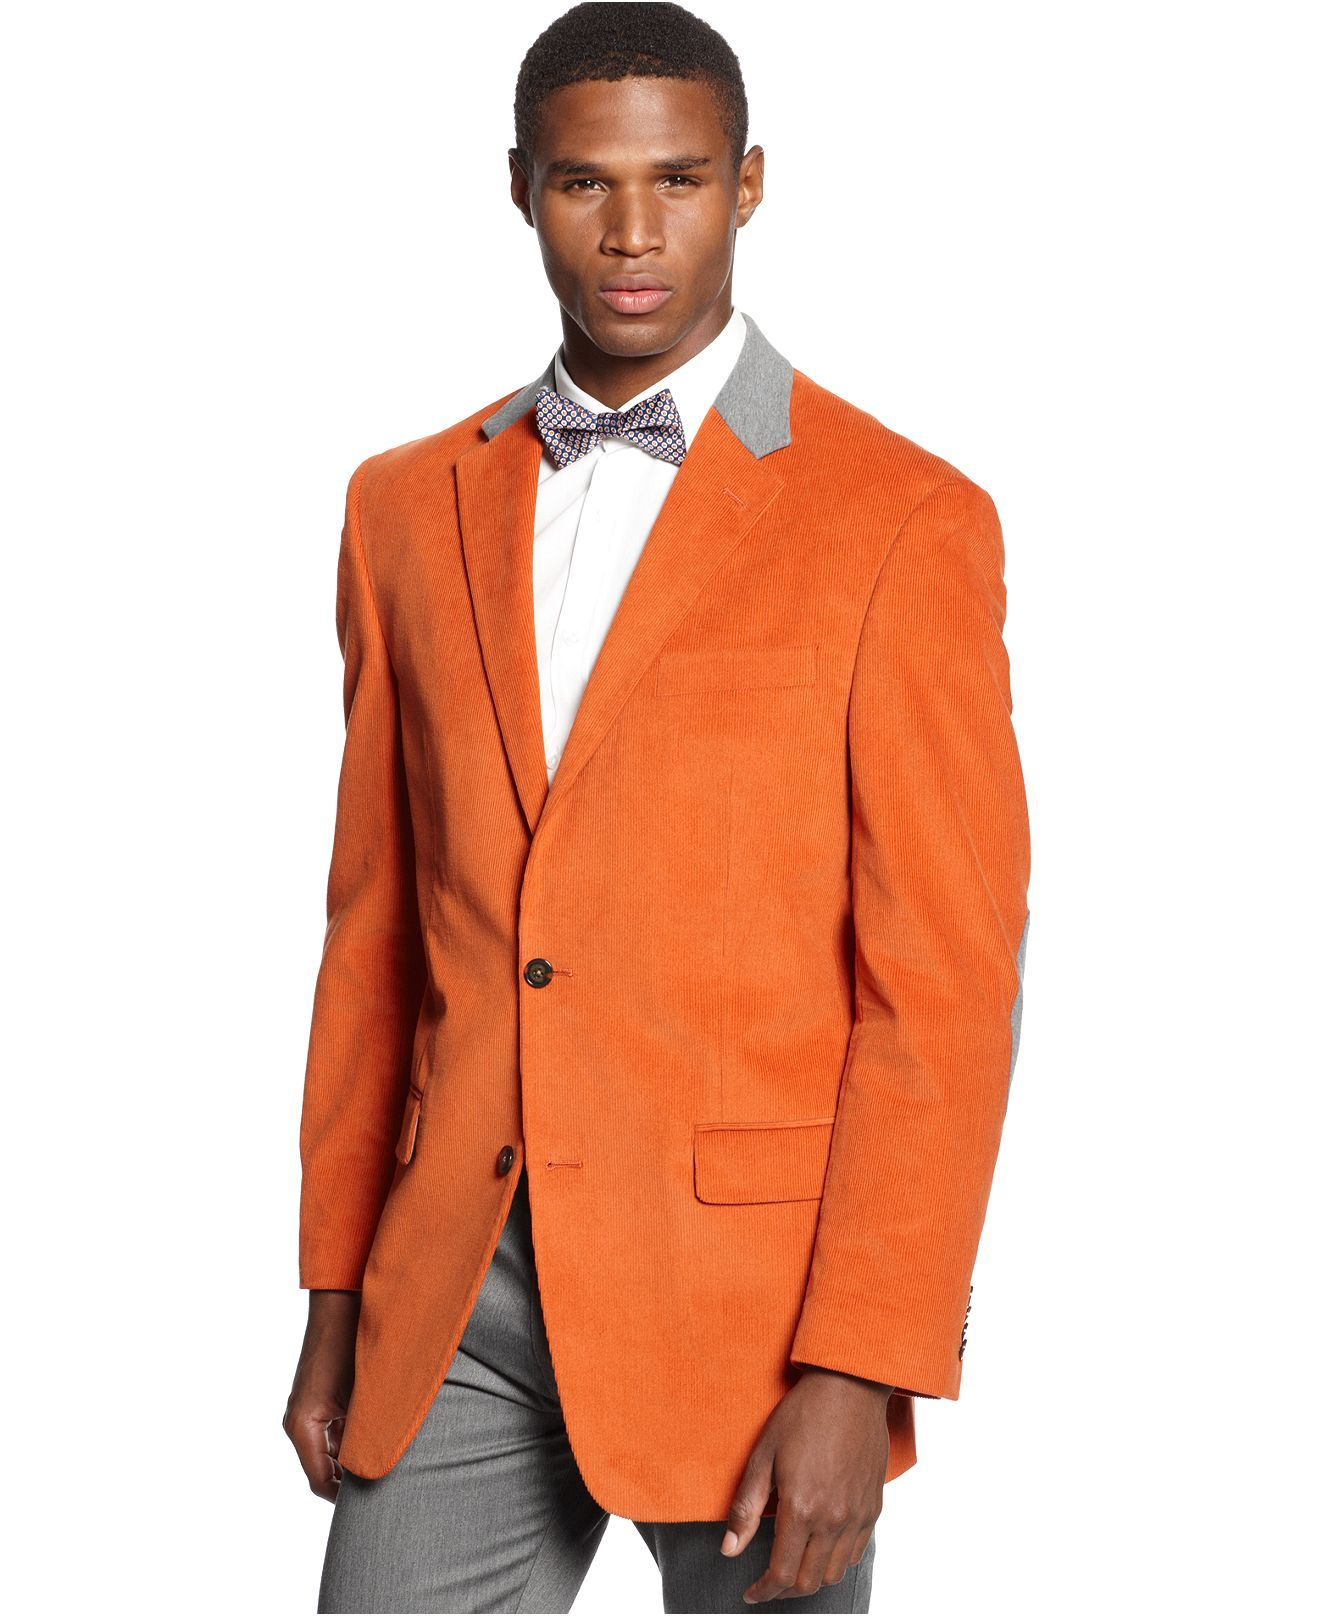 Sean John Jacket, Solid Corduroy With Elbow Patches